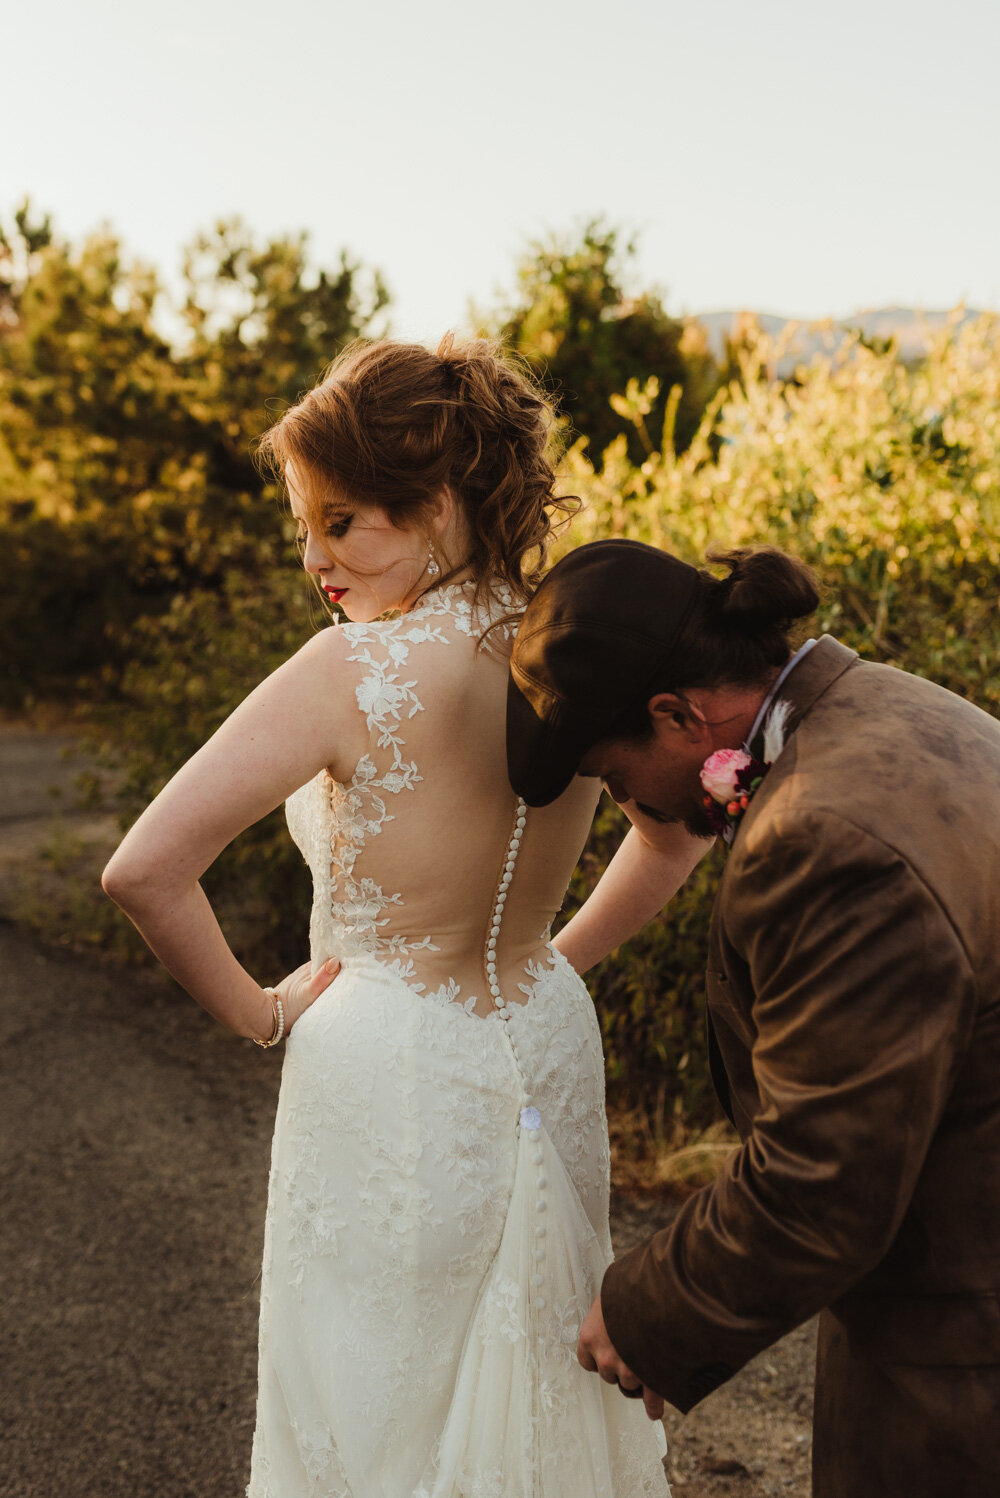 River School Farm Wedding, photo of groom helping his bride with the dress